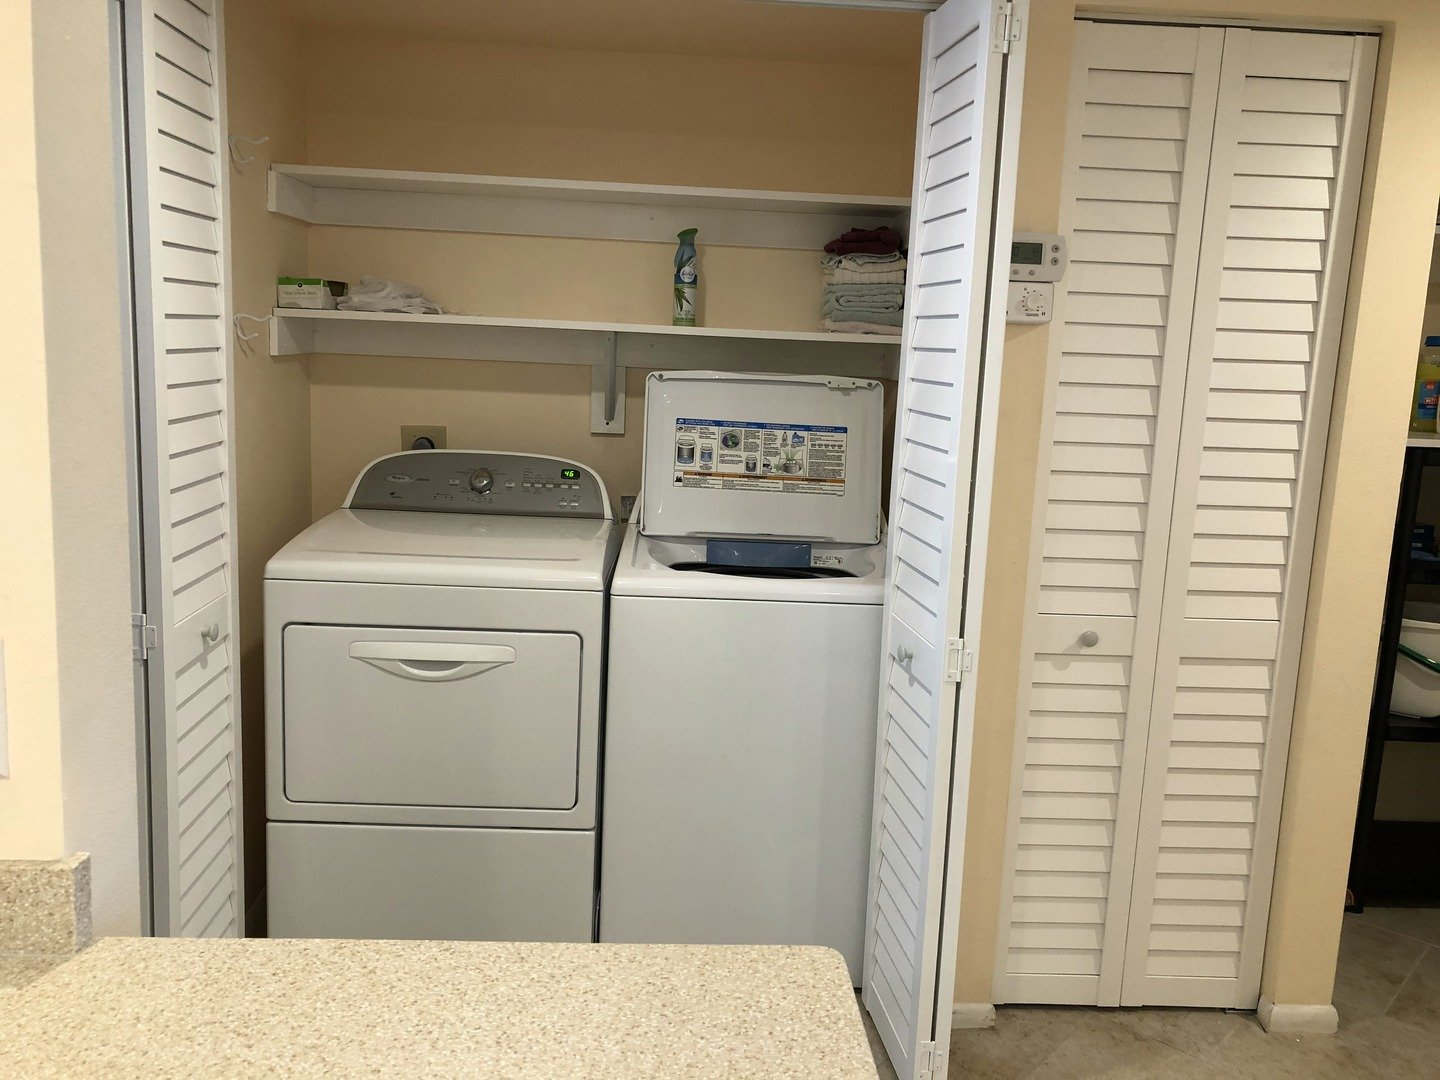 105 Tiffany Place washer & dryer